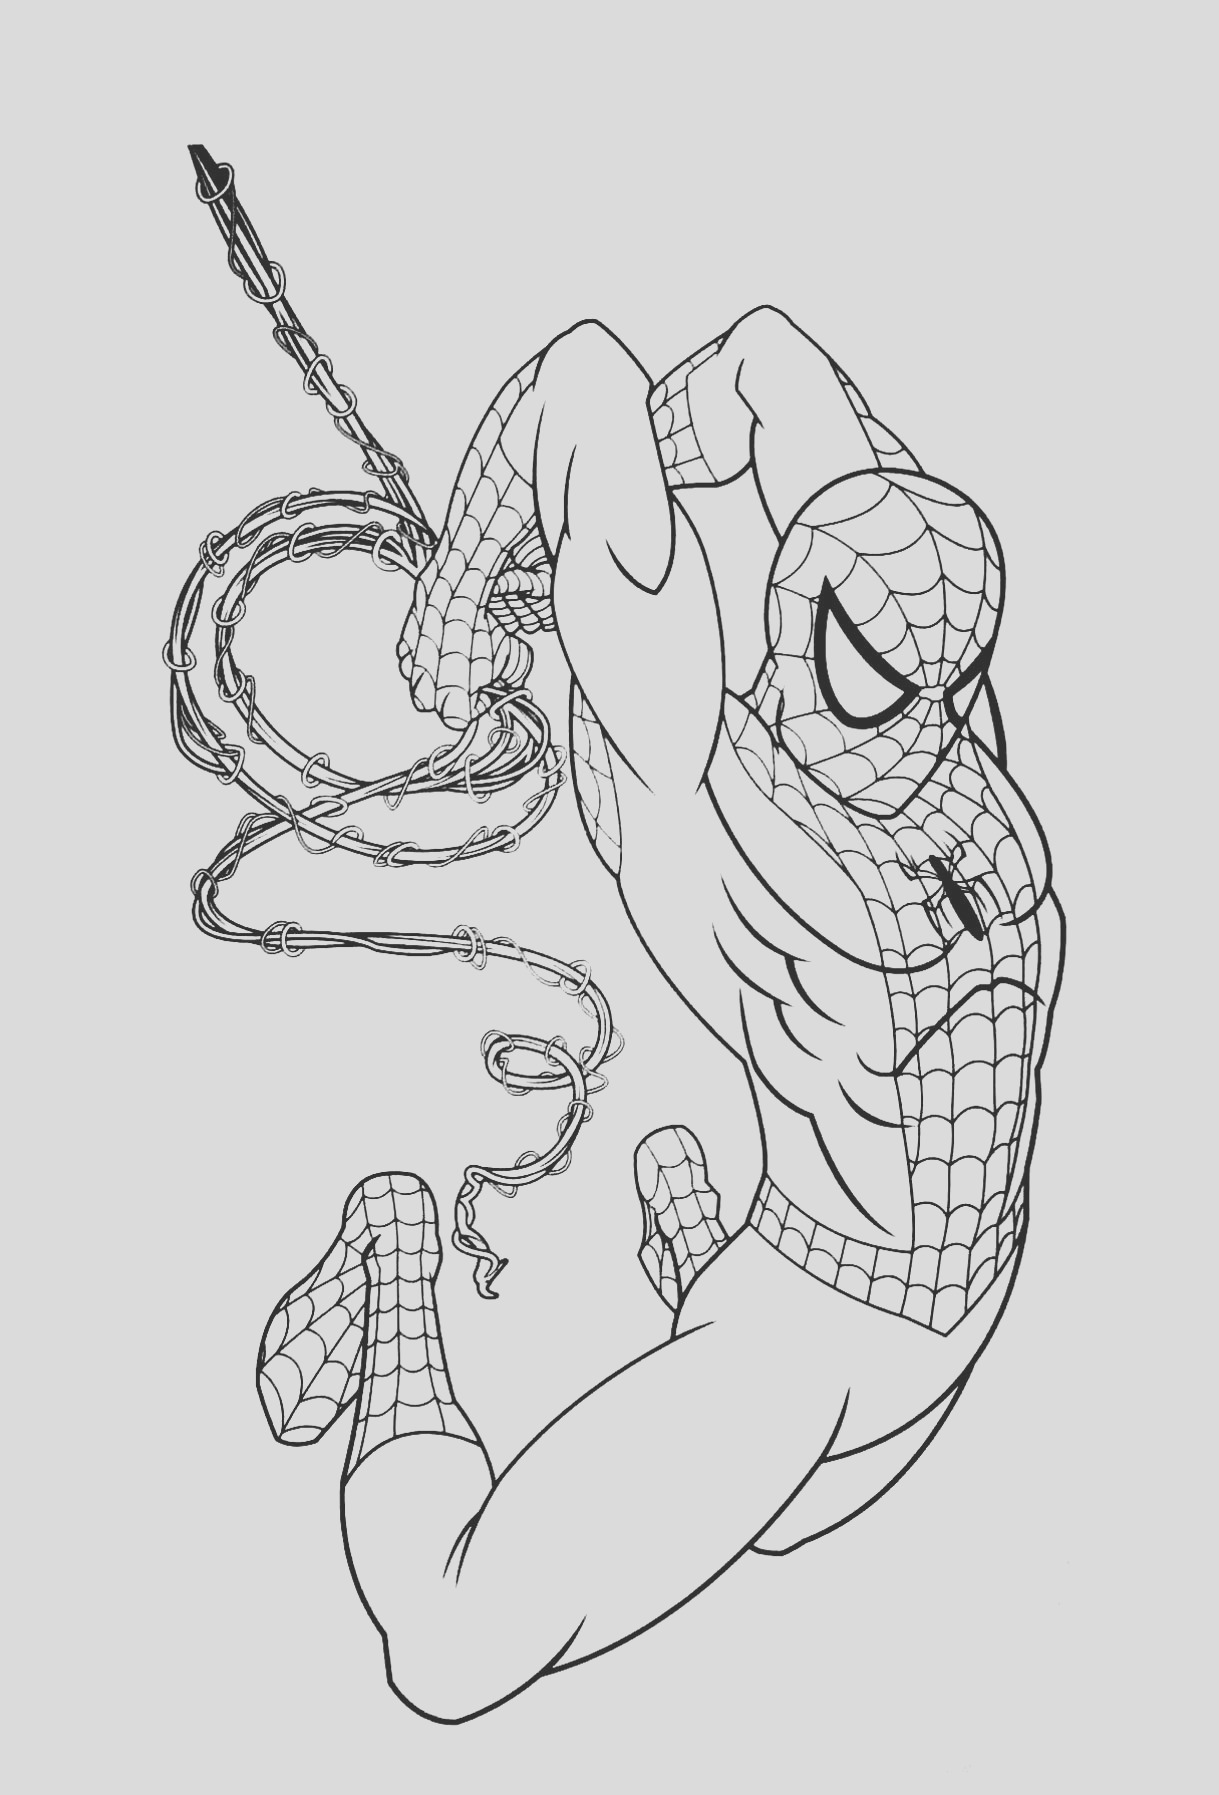 image=spiderman Coloring for kids spiderman 1